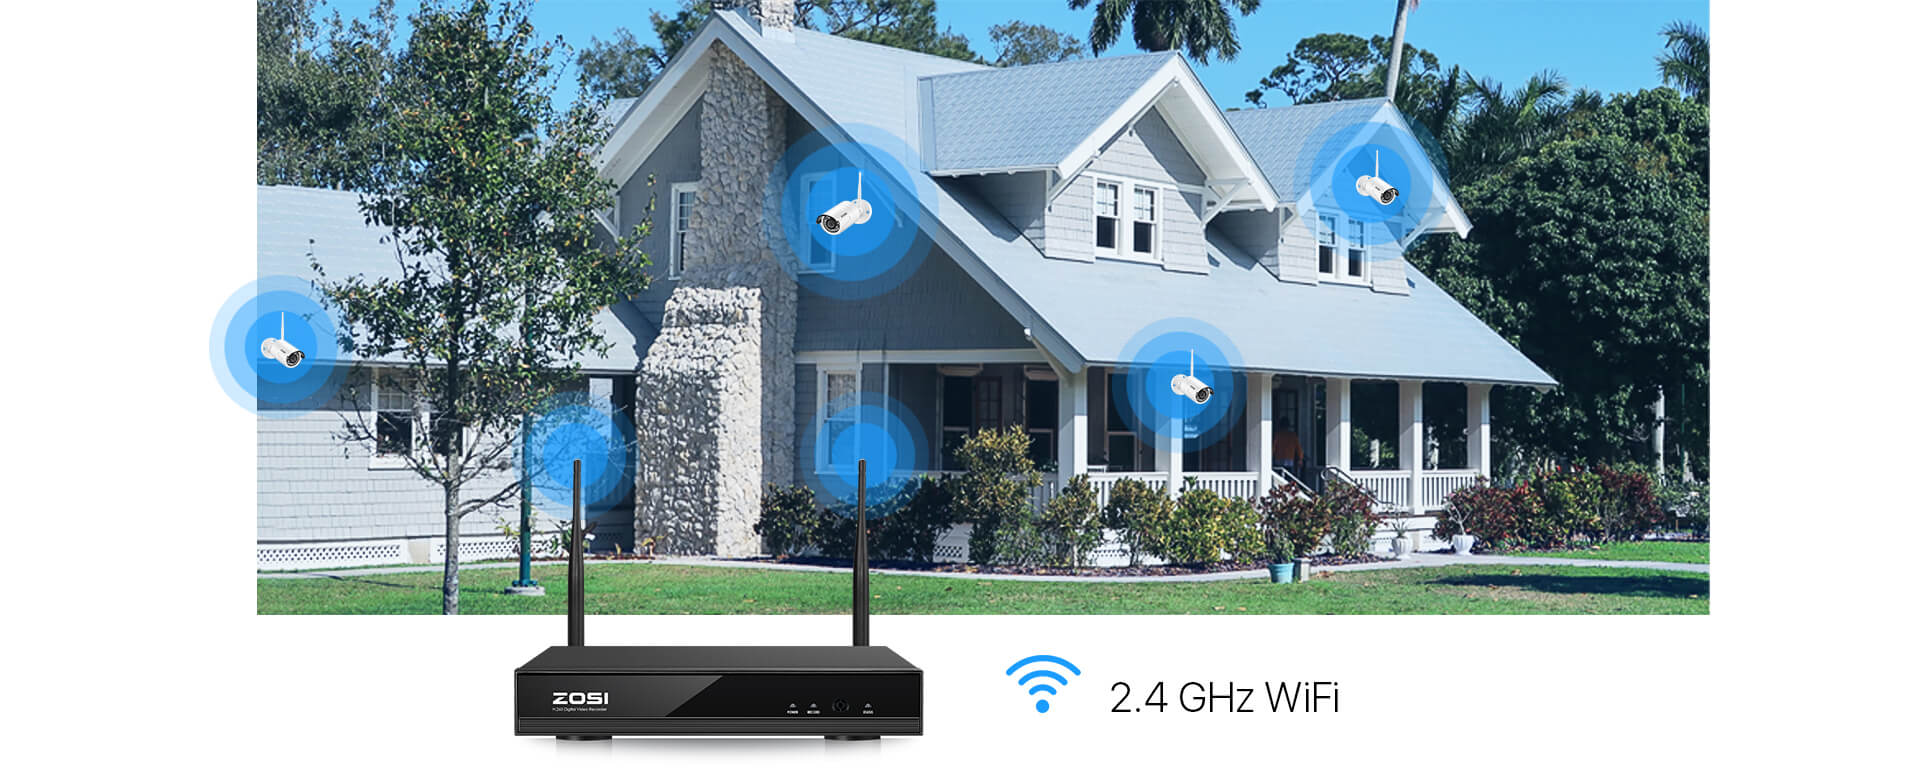 zosi wifi security support max 1000ft wifi range